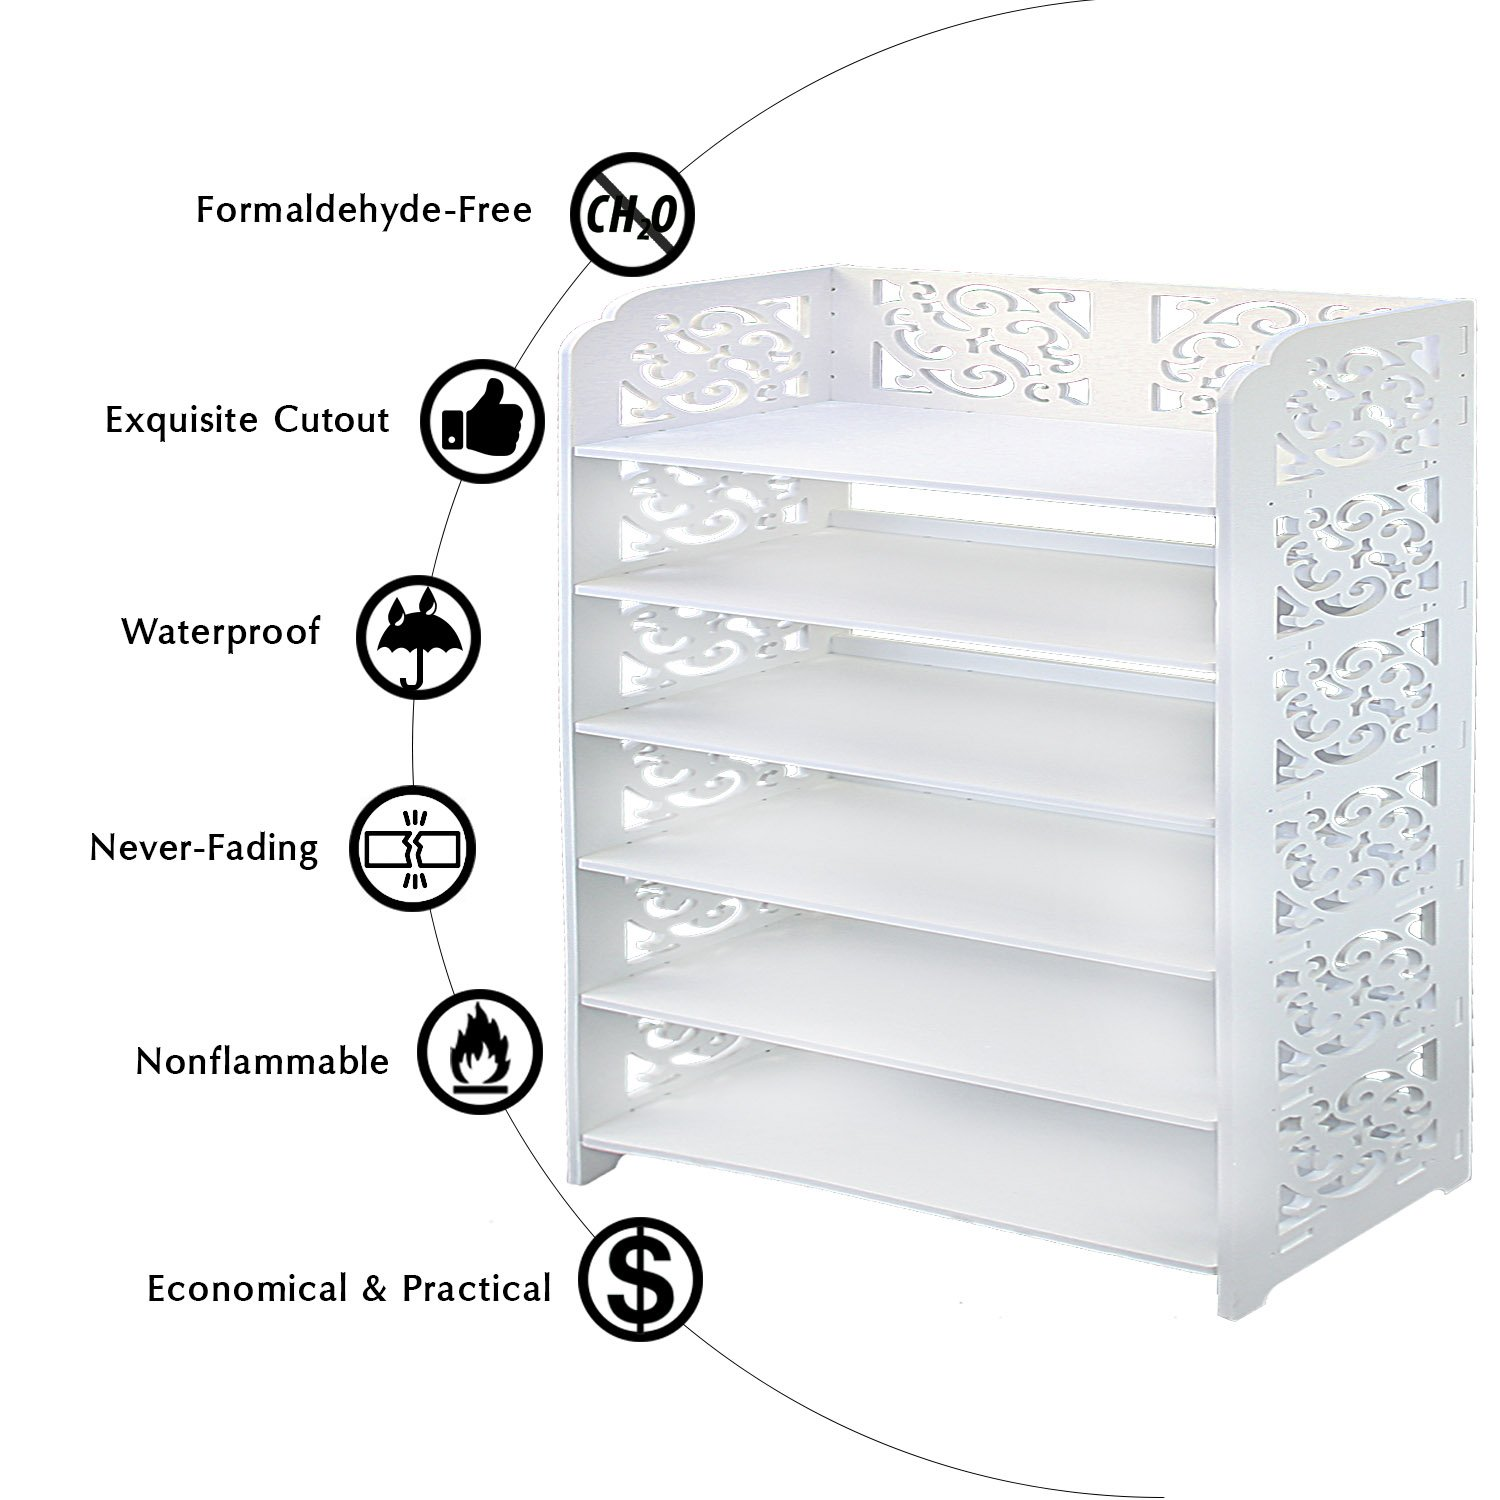 DL furniture - WPC Multipurpose Shoe Rack & Book Shelf L23.5'' x W9.5'' x H38'' 6 Tier Tall & Wide, Environmental Friendly Material | White… by DL furniture (Image #5)